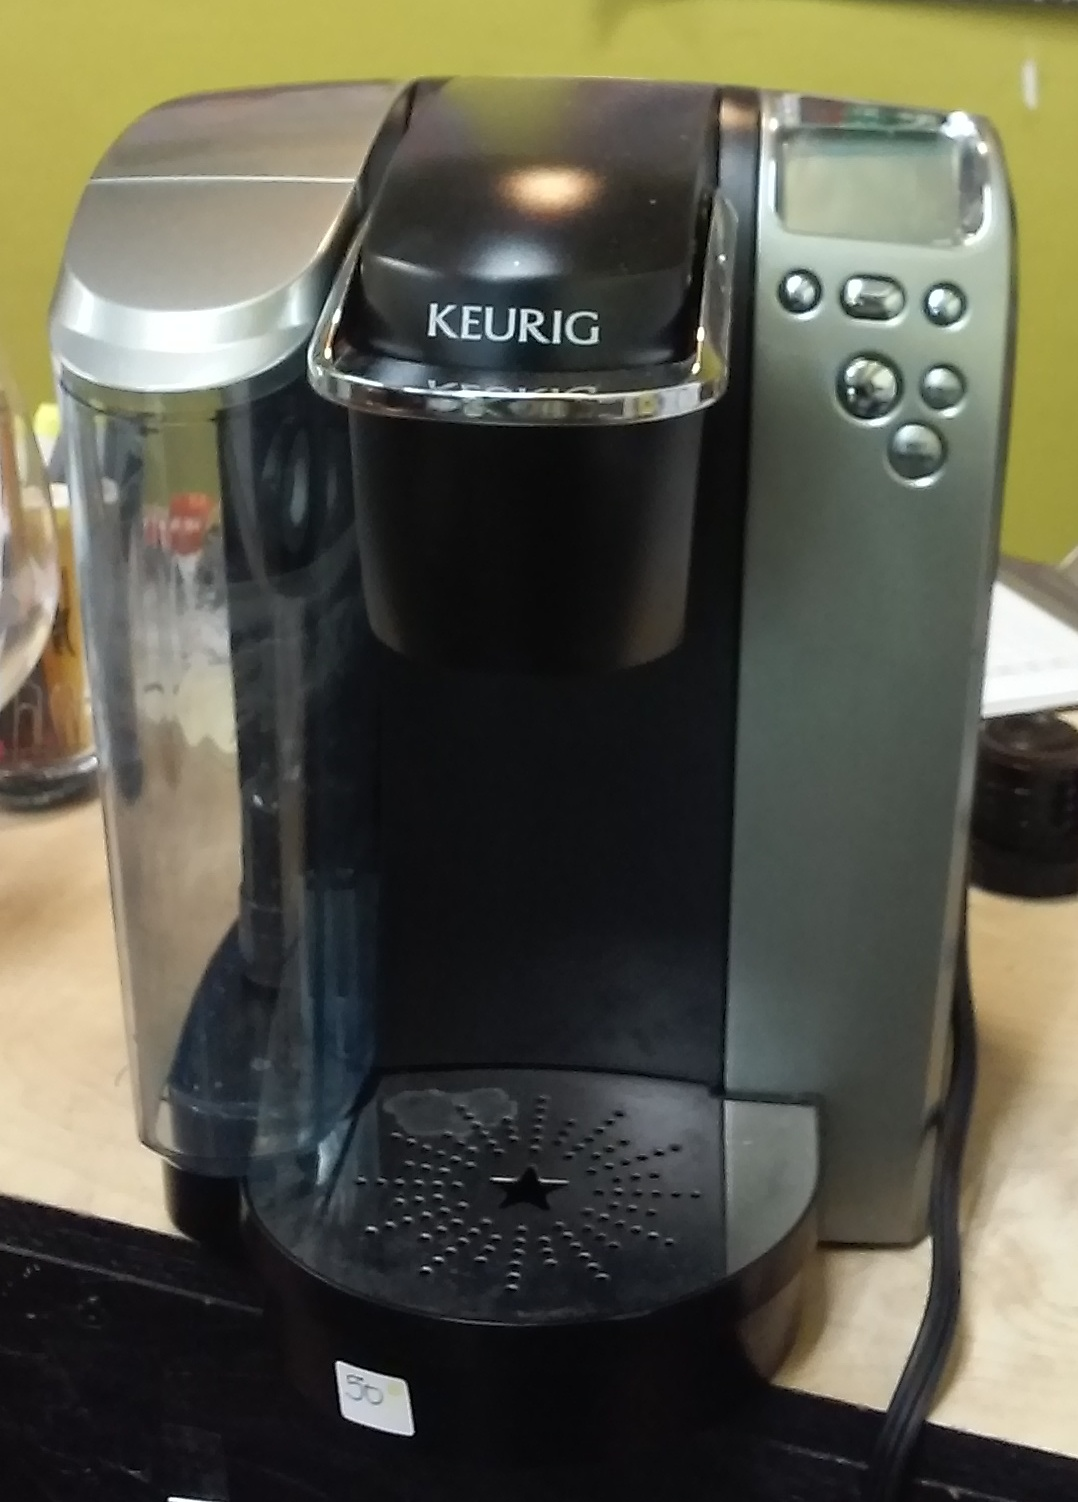 UHURU FURNITURE & COLLECTIBLES: SOLD Keurig K70 Single Cup Coffee Maker - USD 50